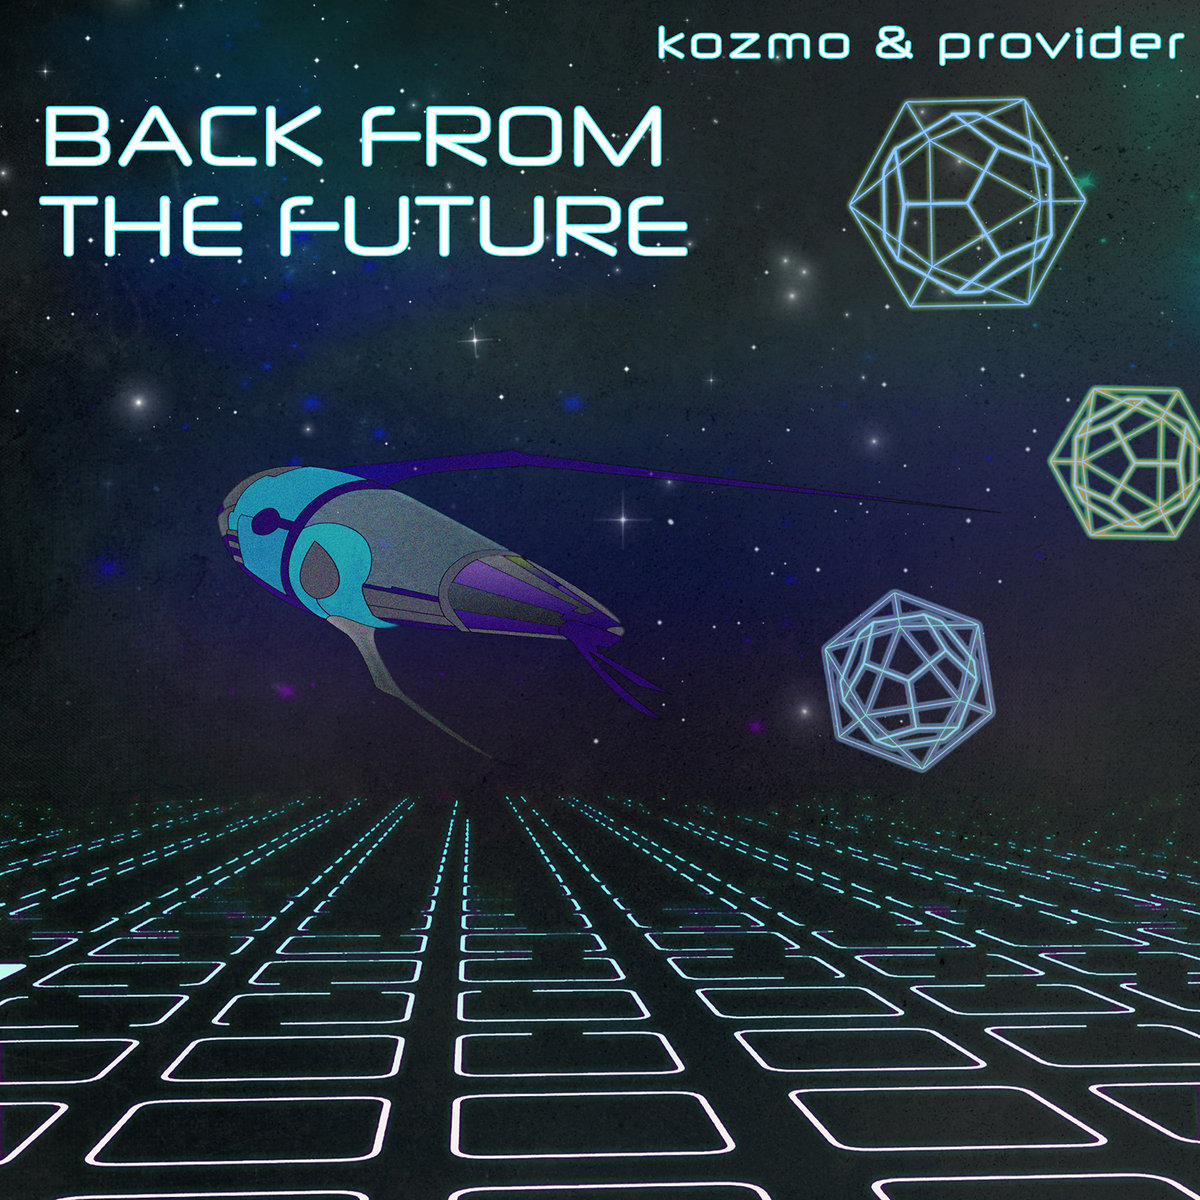 KOZMO & Provider - Reconcile (The Digital Connection Remix) @ 'Back From the Future' album (electronic, dubstep)